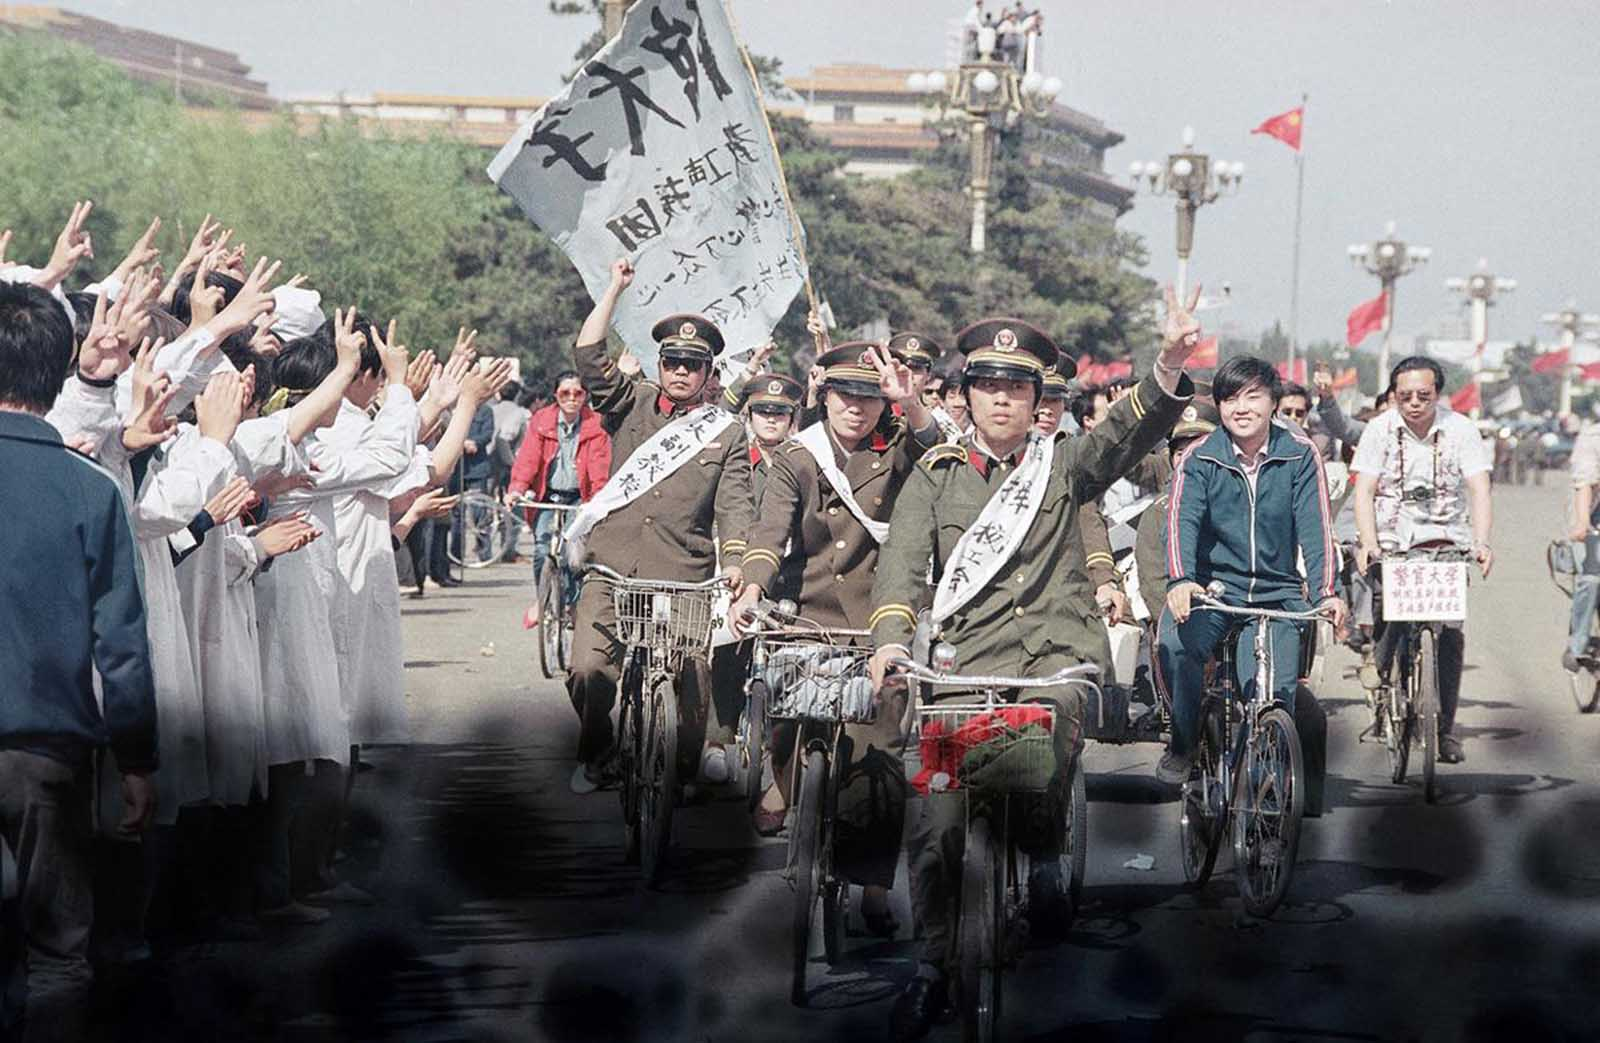 Beijing police parade through Tiananmen Square carrying banners in support of striking University students, on May 19, 1989. The students were in the sixth day of their hunger strike for political reform.